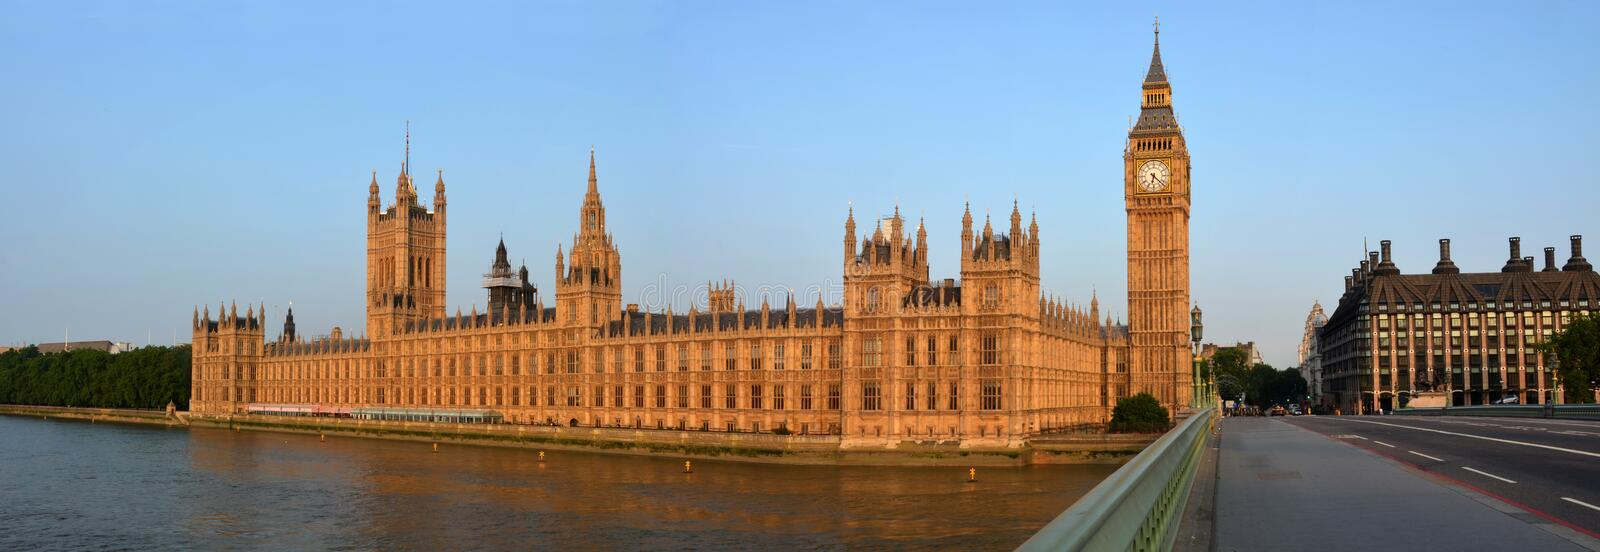 Houses of Parliament & Big Ben Panorama from Westminster Bridge. stock photo